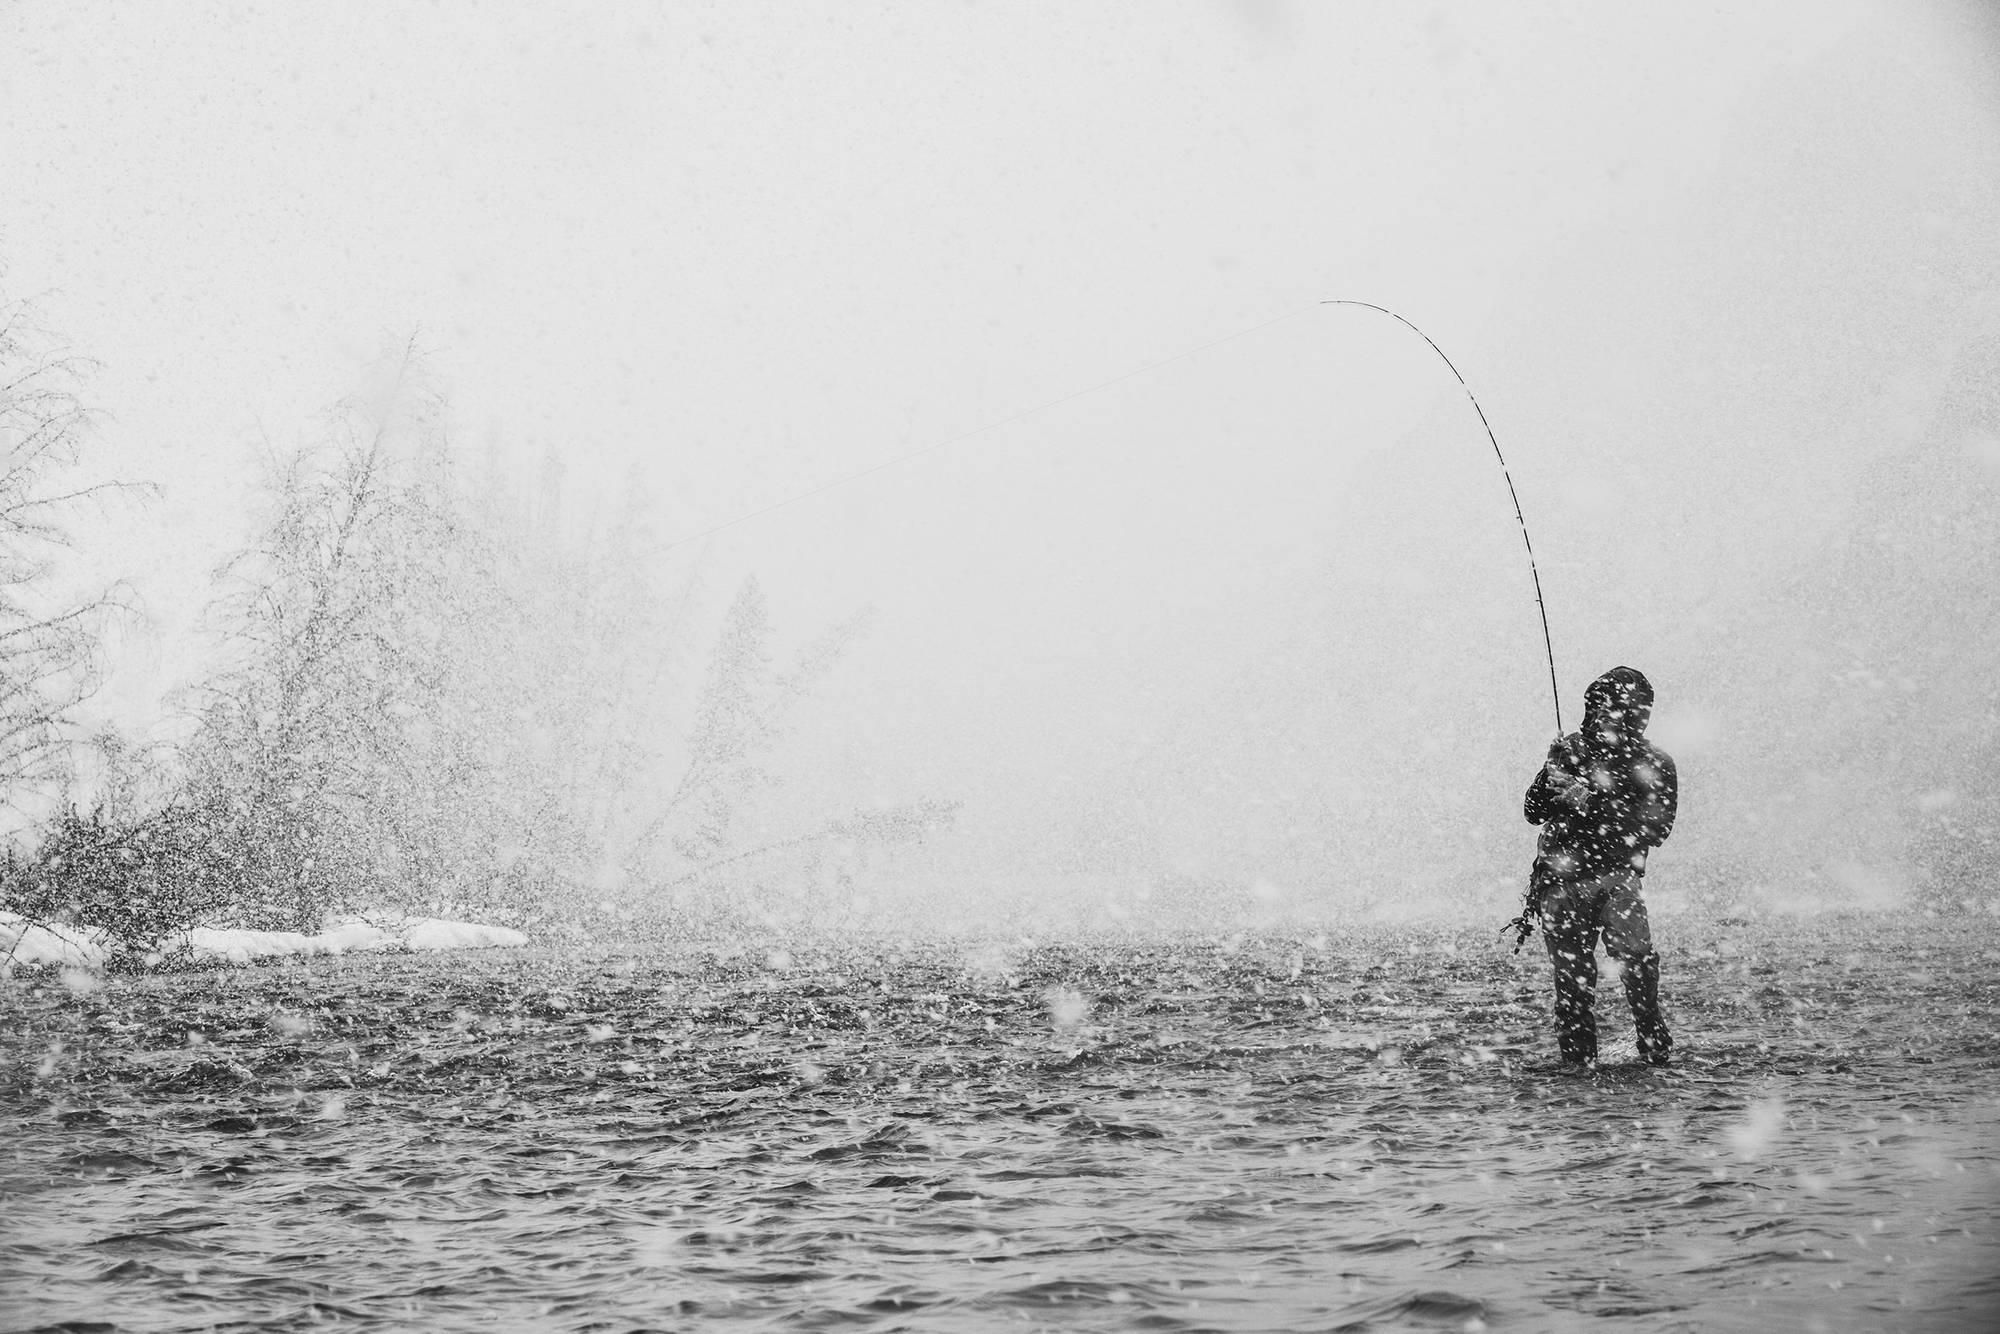 When fly fishing gives you a perfect, snowy scene like this one, you owe it to the rest of it to capture it—but doing so is no easy task. With this shot, photographer Ray Gadd makes it look easy.